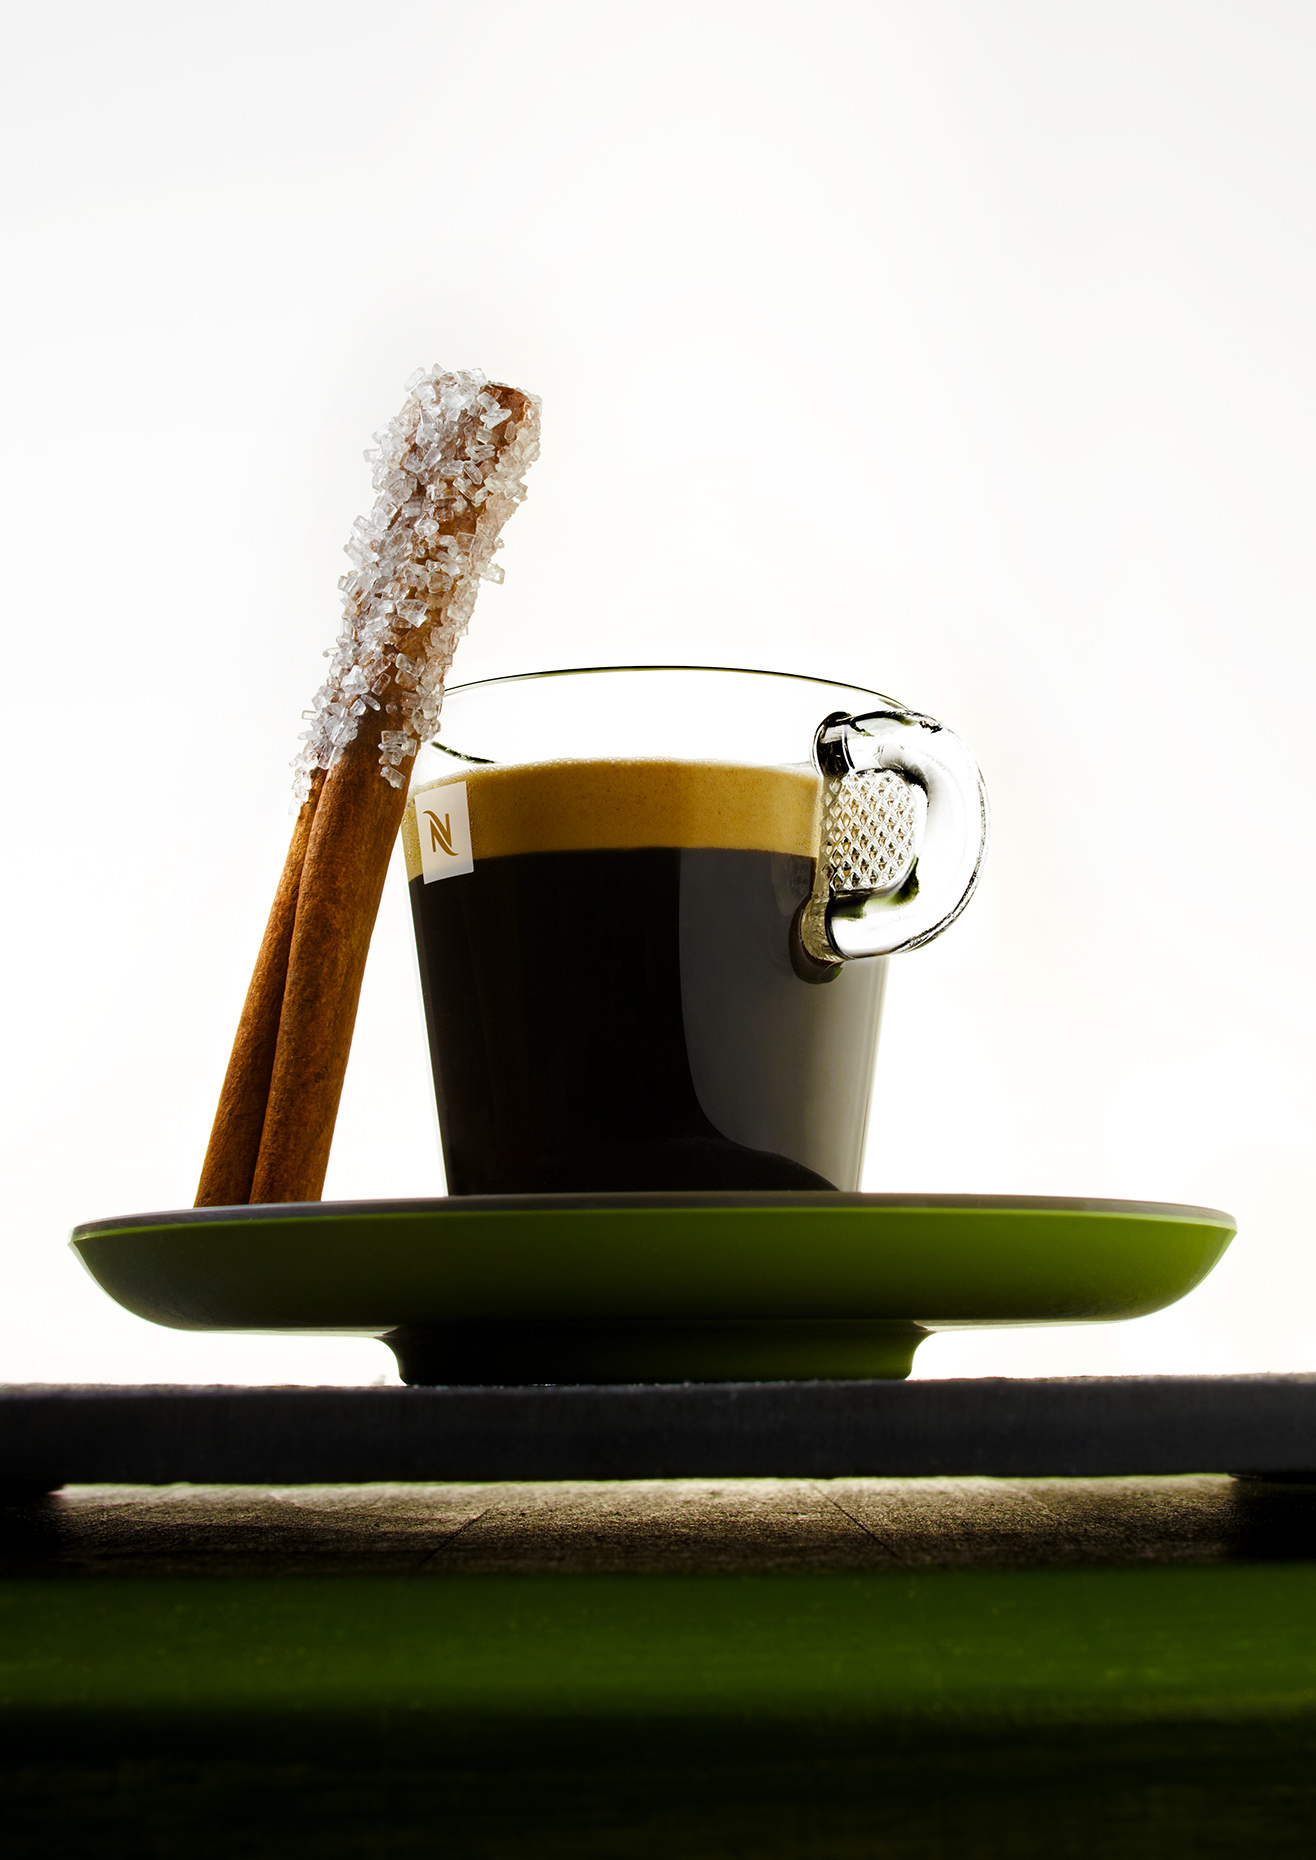 Espresso-With-Cinnamon-Stick-On-Green